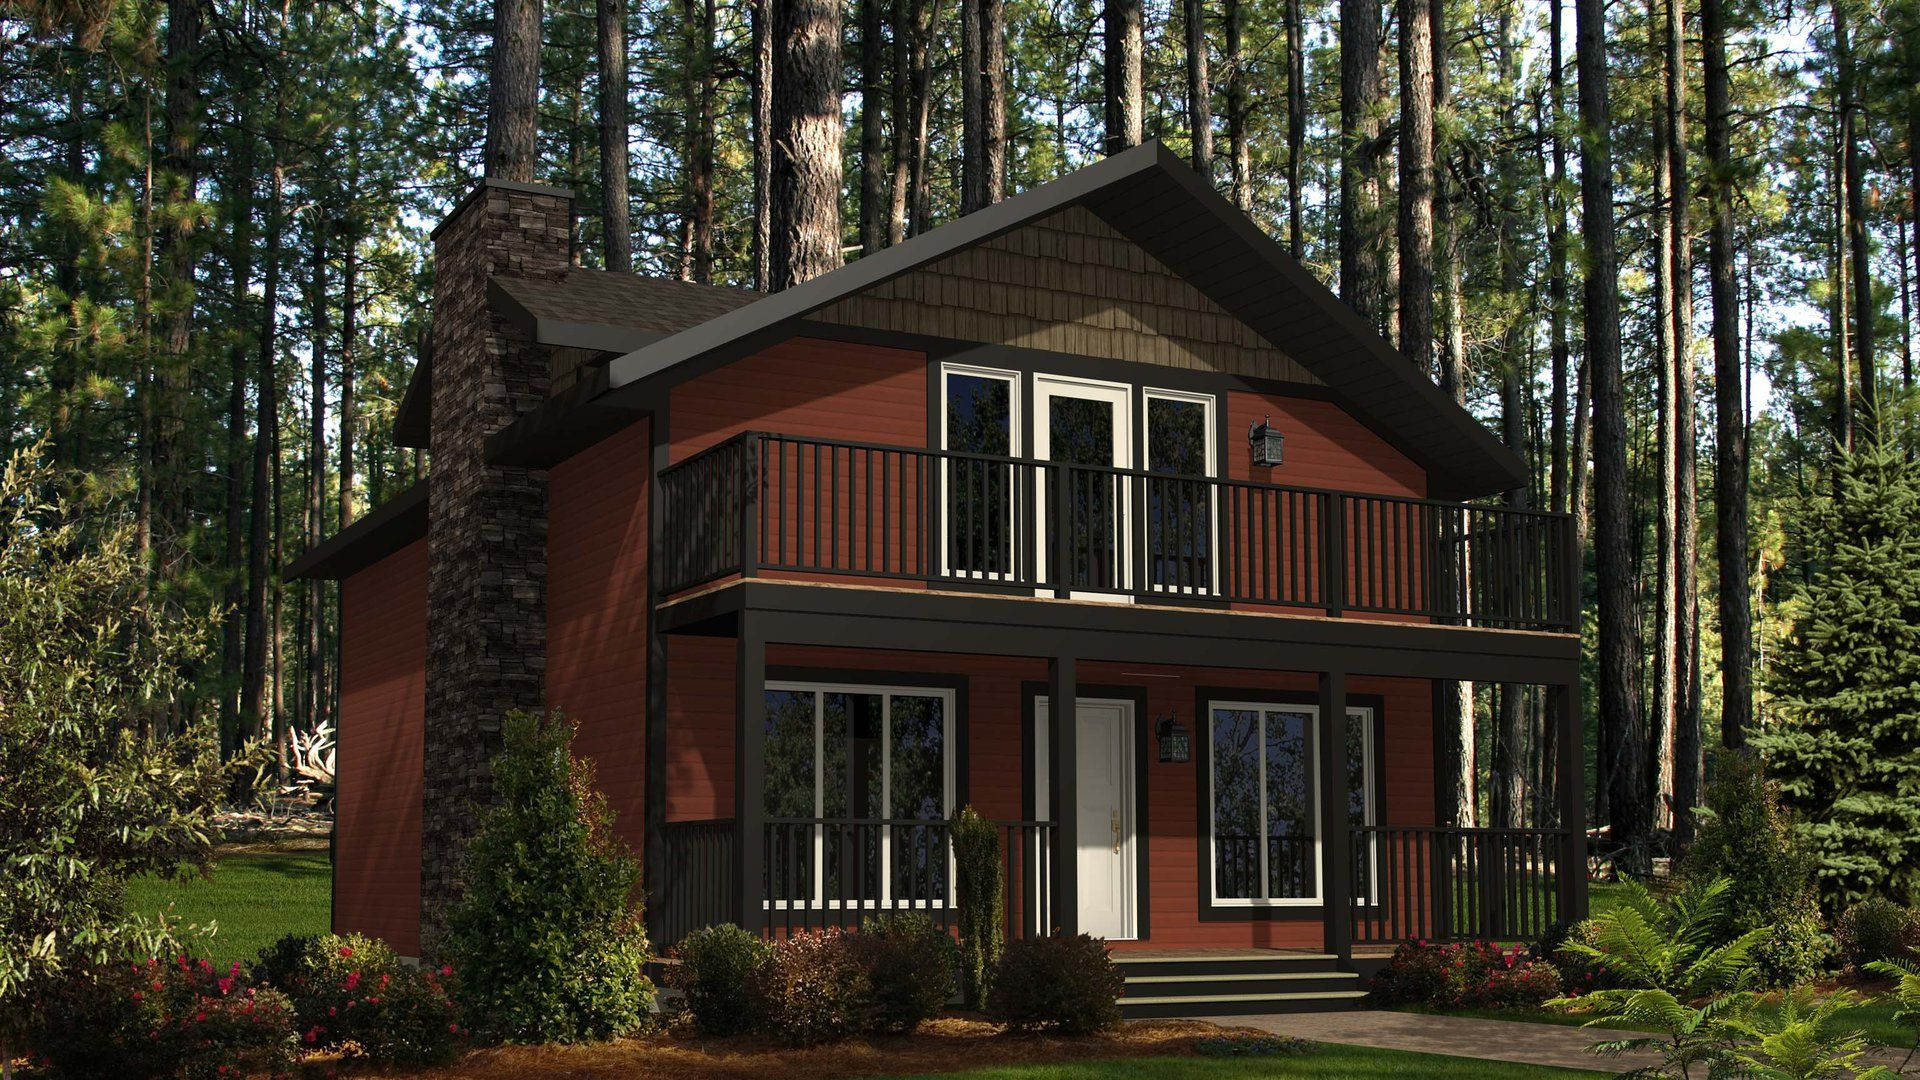 Chateau Ridge Nelson Homes In 2020 Nelson Homes Cottage Plan House Plans